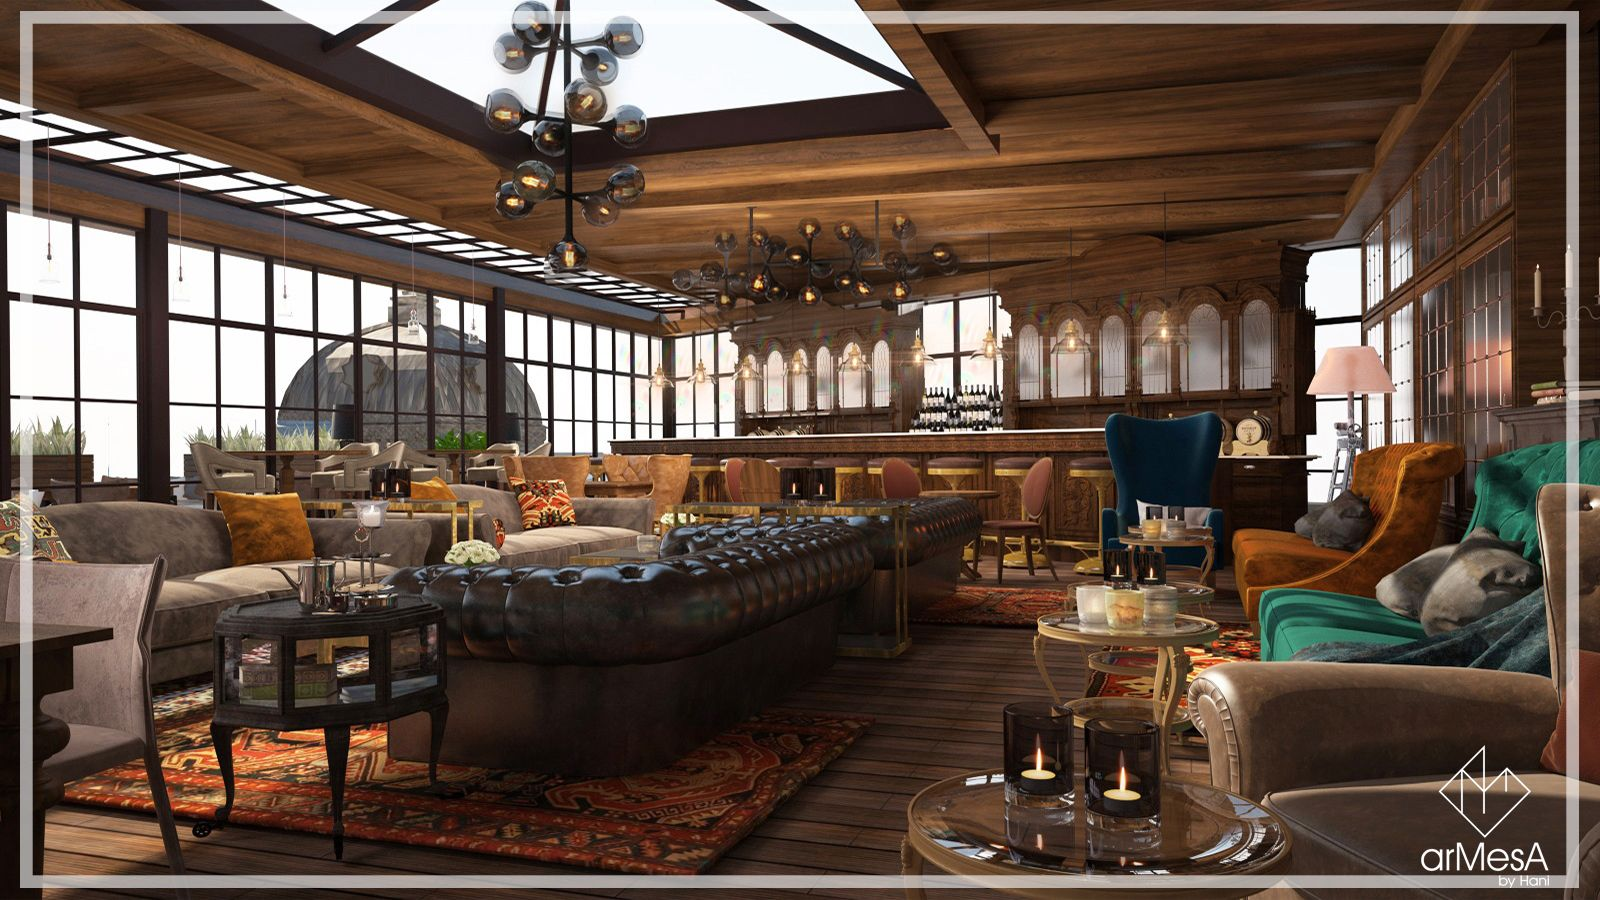 Rooftop Café Restaurant Vishap Interior Design In Yerevan